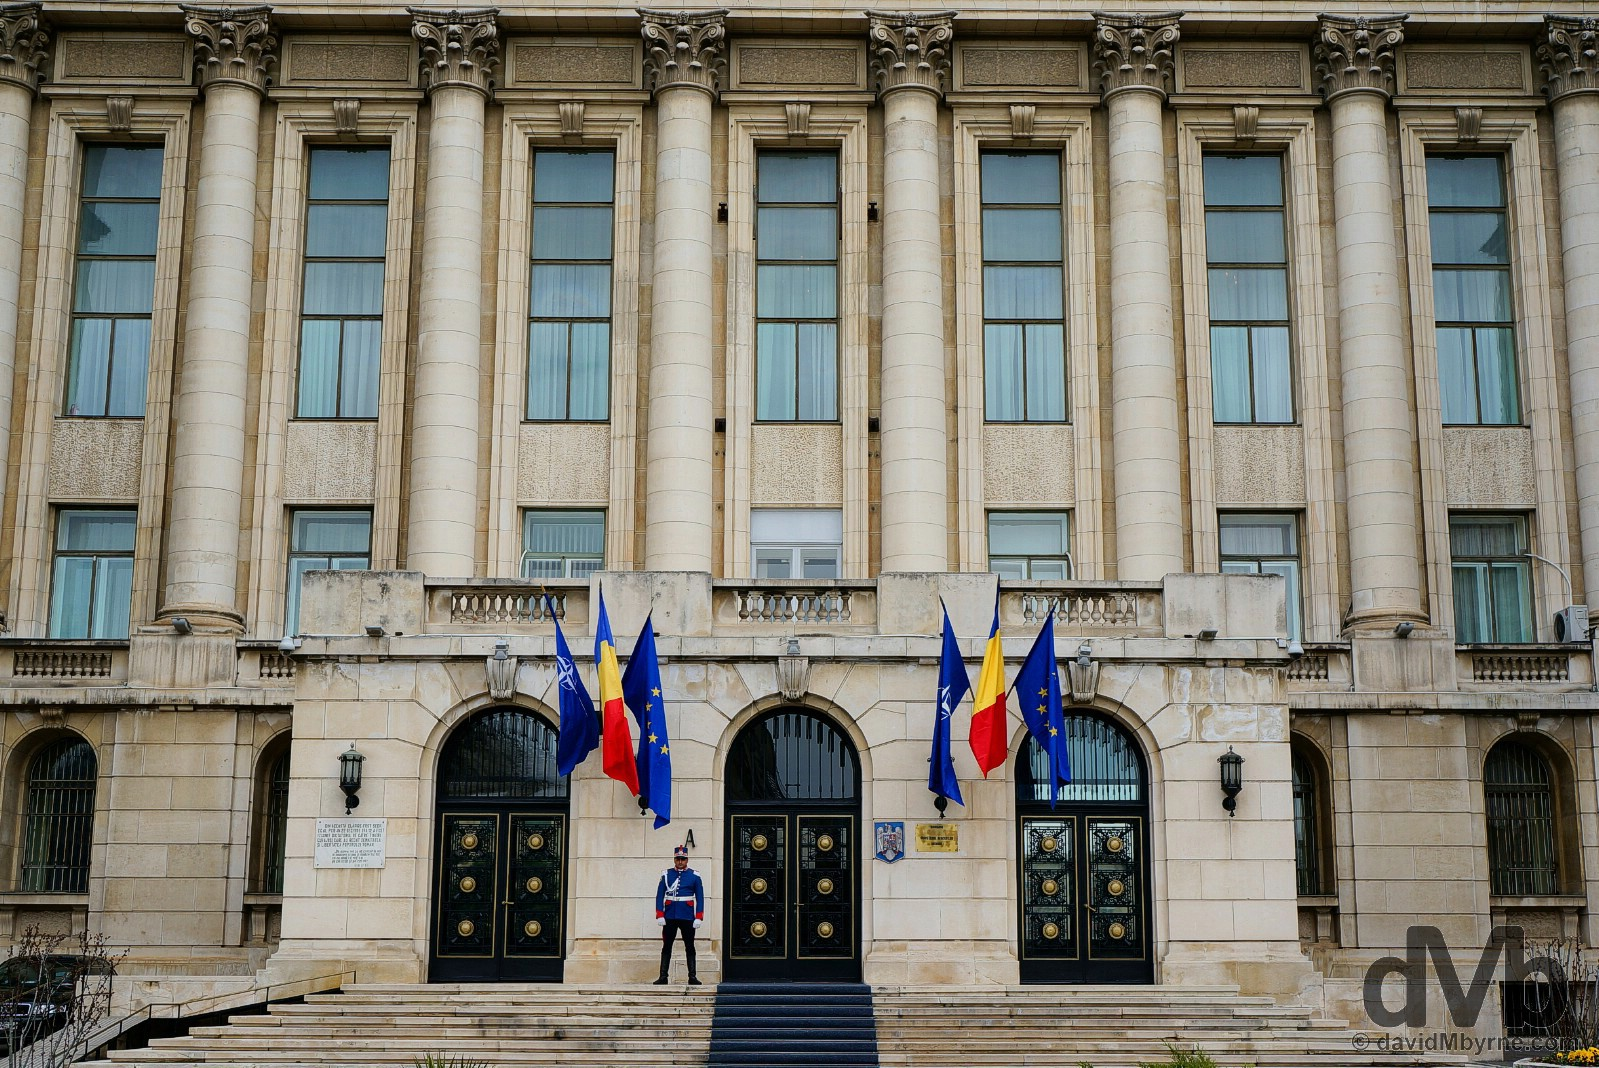 Outside the Former Central Committee Of The Communist Party Building off Piata Revolutiei (Revolution Square), Bucharest, Romania. April 1, 2015.